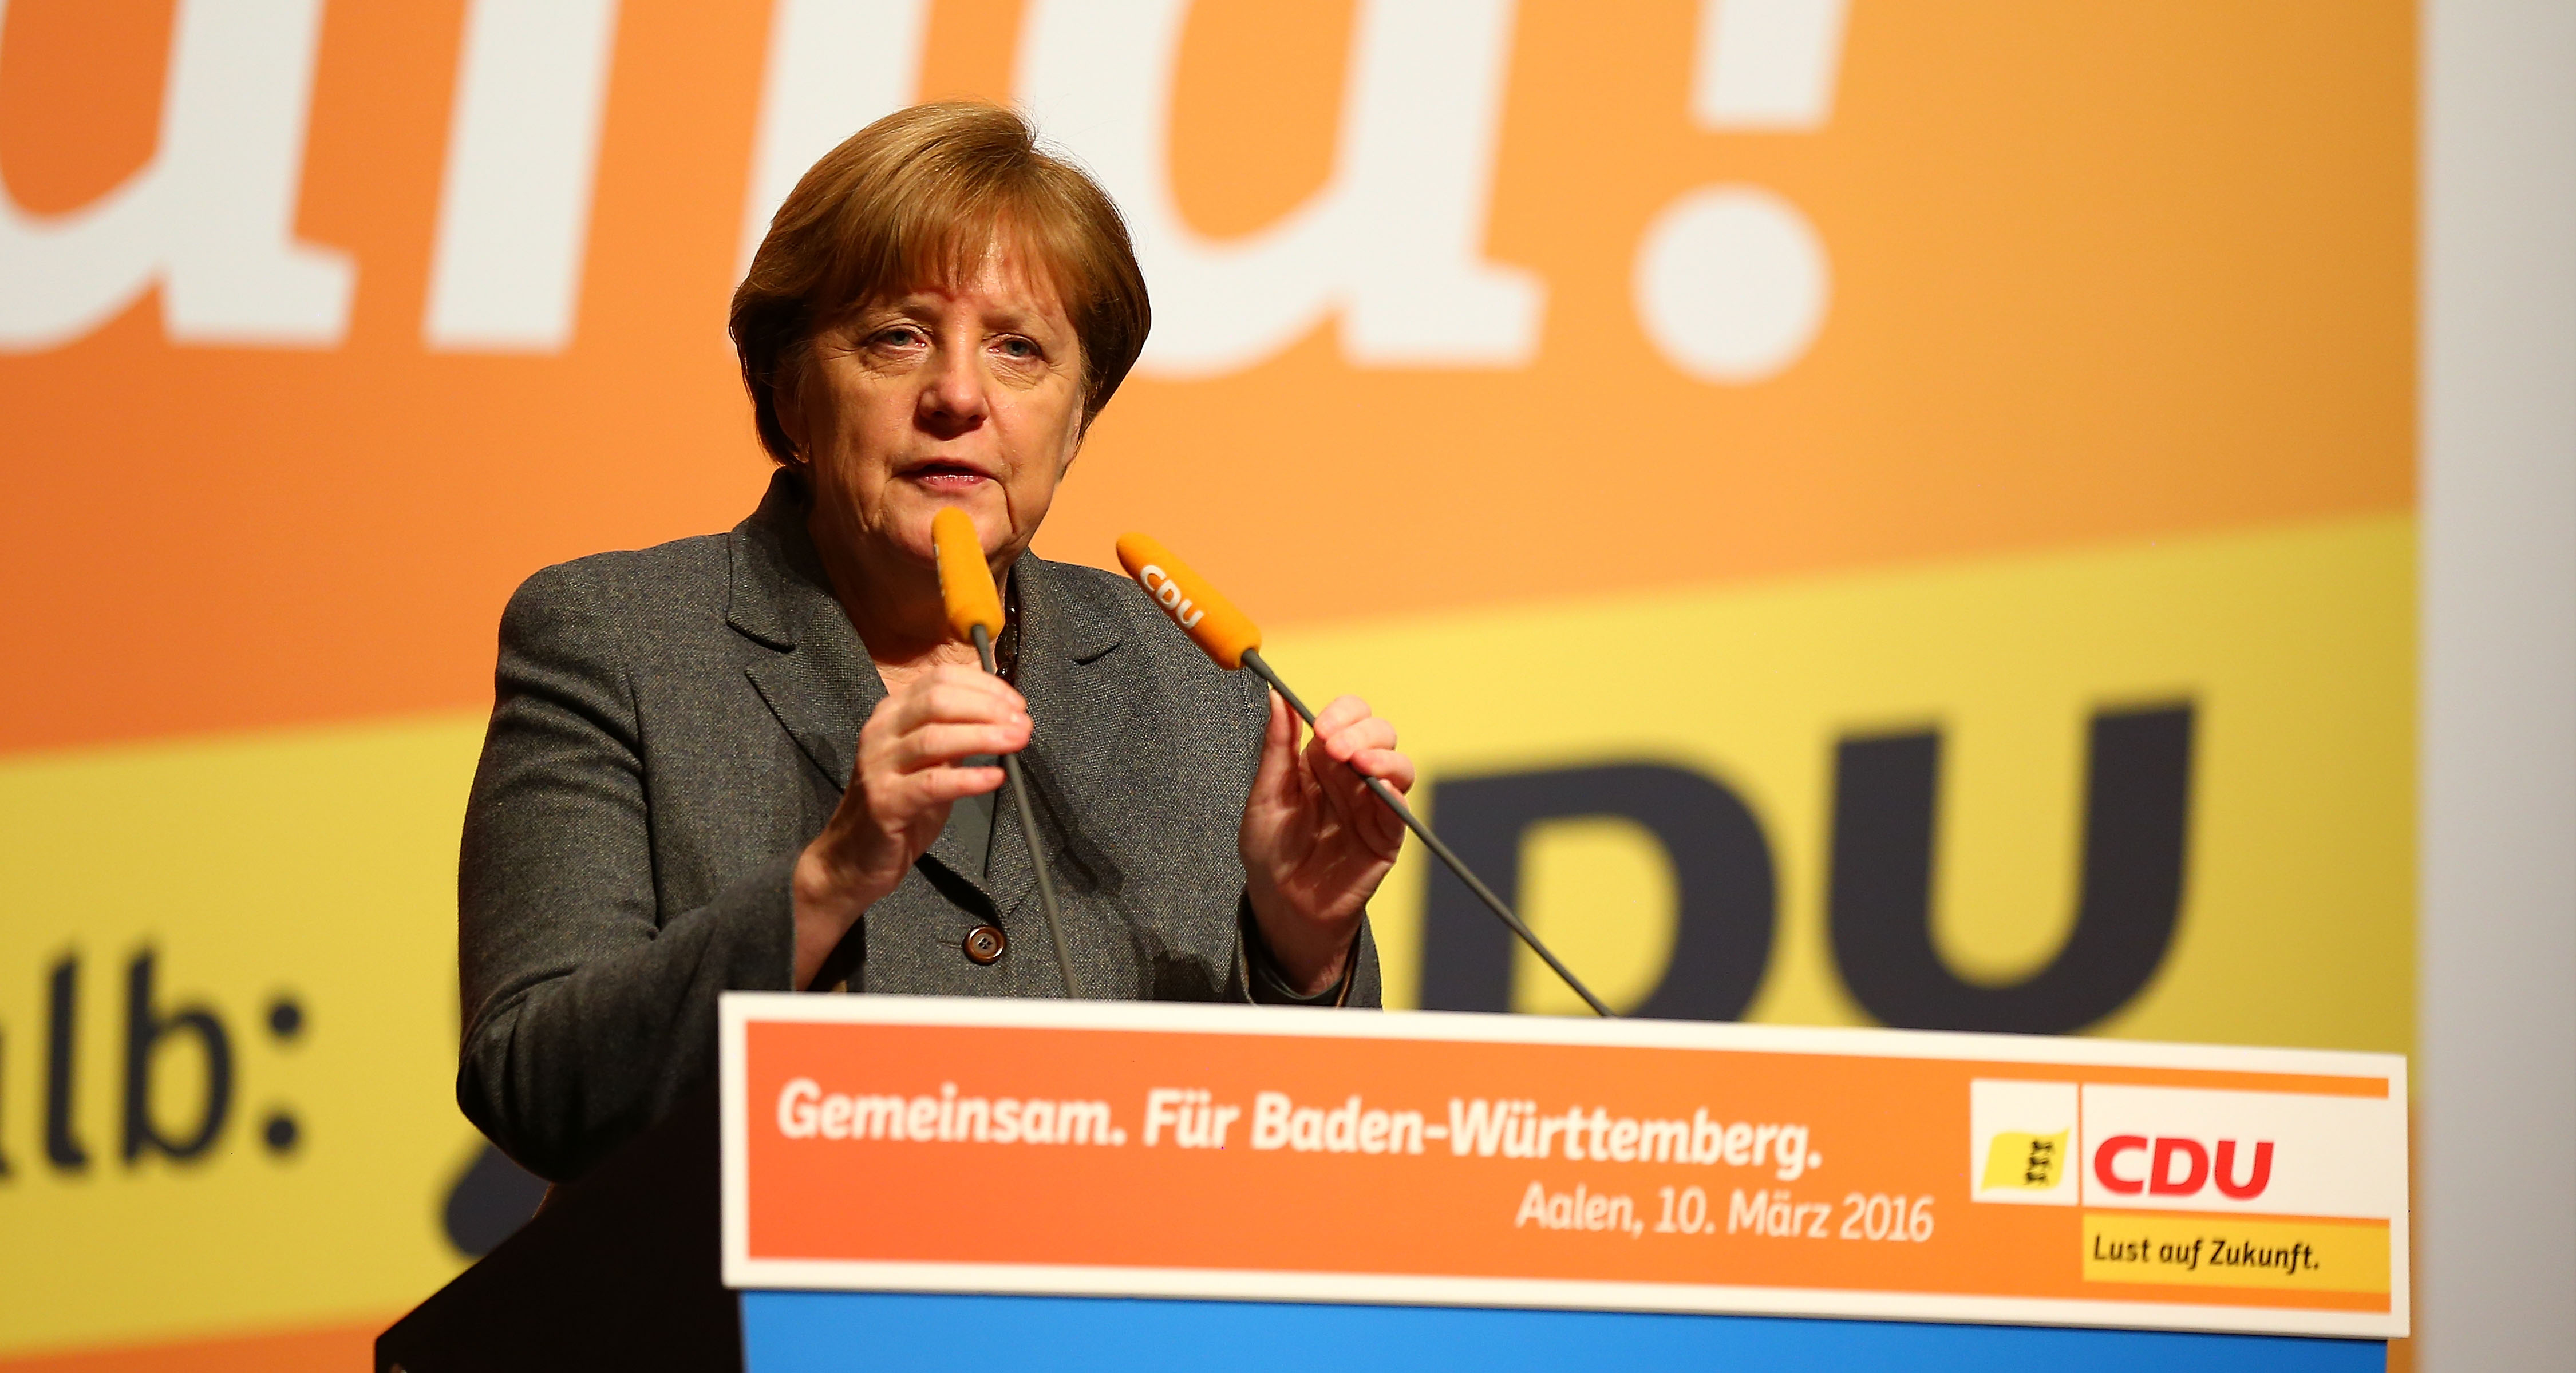 German Chancellor and Chairwoman of the German Christian Democrats (CDU) Angela Merkel speaks to supporters at a CDU campaign rally ahead of Baden-Wuerttemberg state elections on March 10, 2016 in Aalen, Germany.